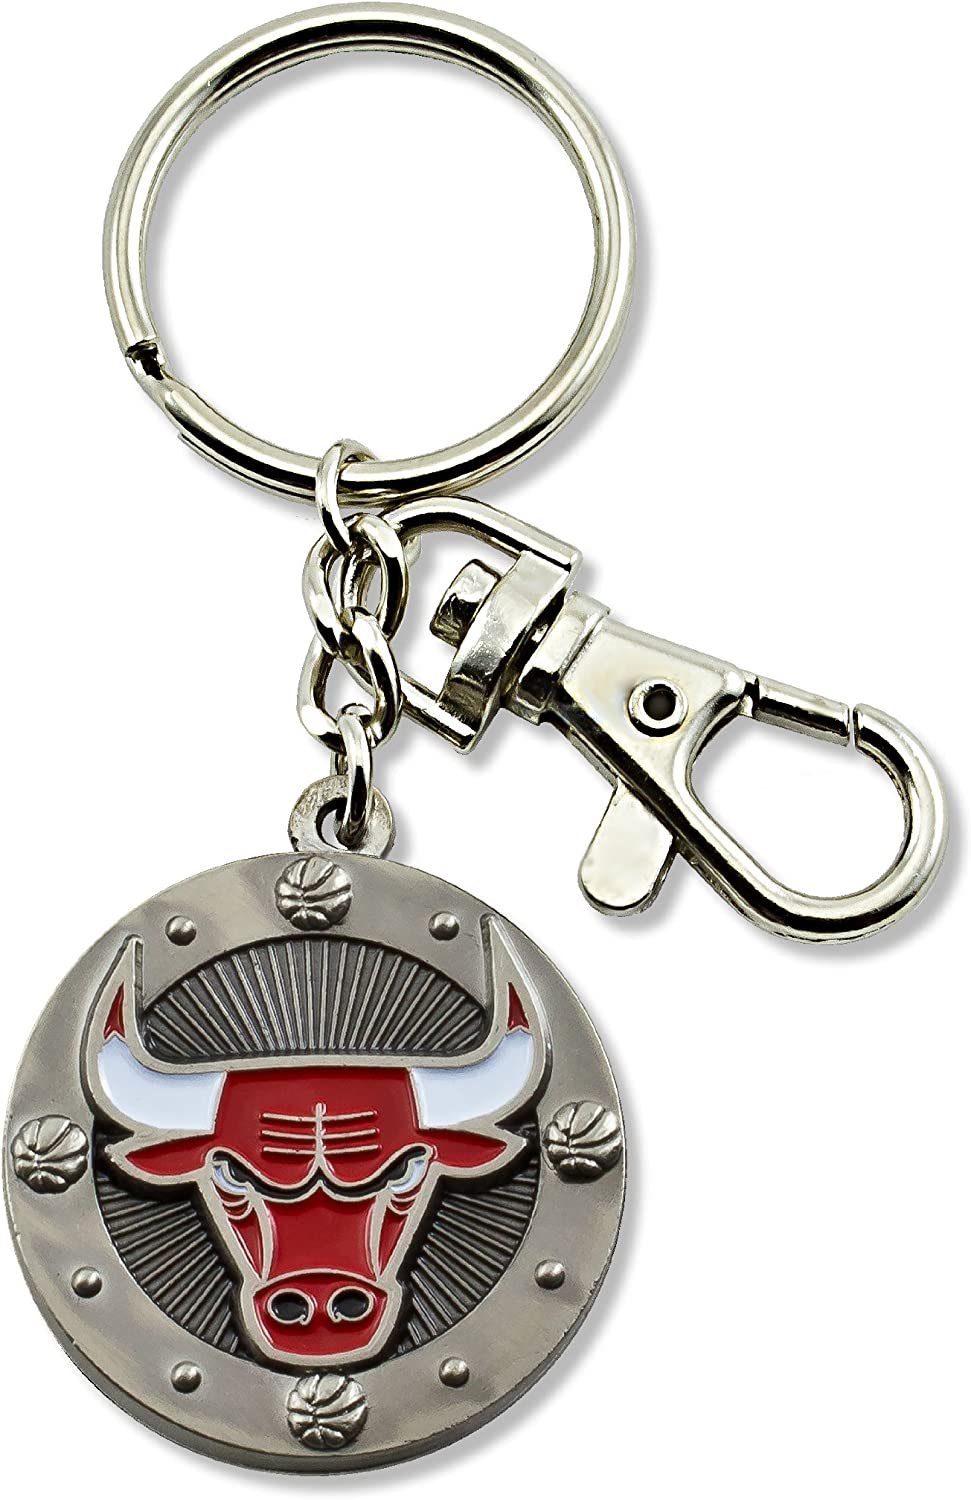 NBA Impact Discount is also underway Keychain - Colorful Durable Accessories and Max 41% OFF